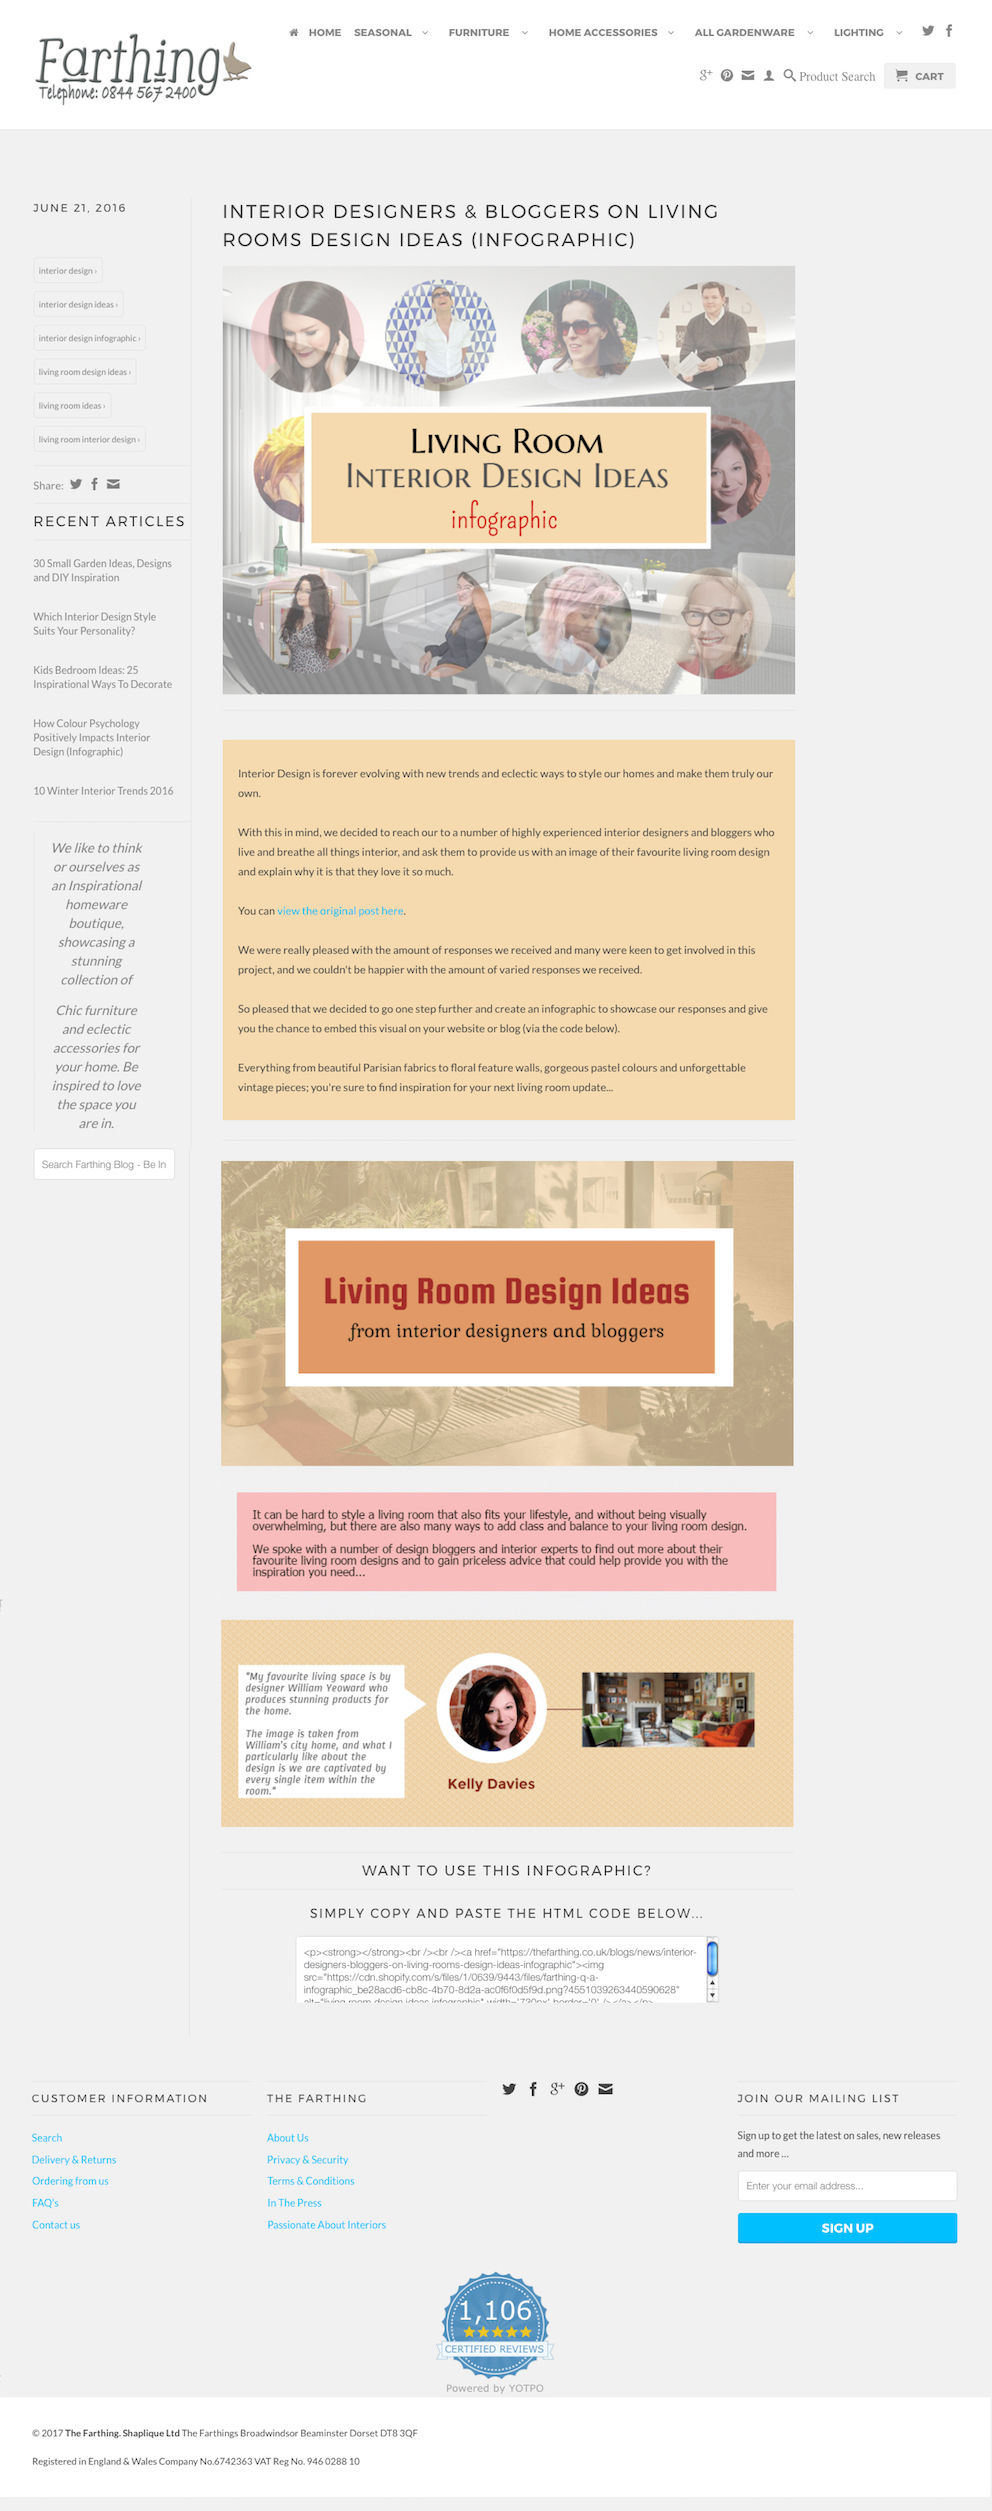 Interior Designers Bloggers Living Rooms Design Ideas Infographic The Farthing FINAL